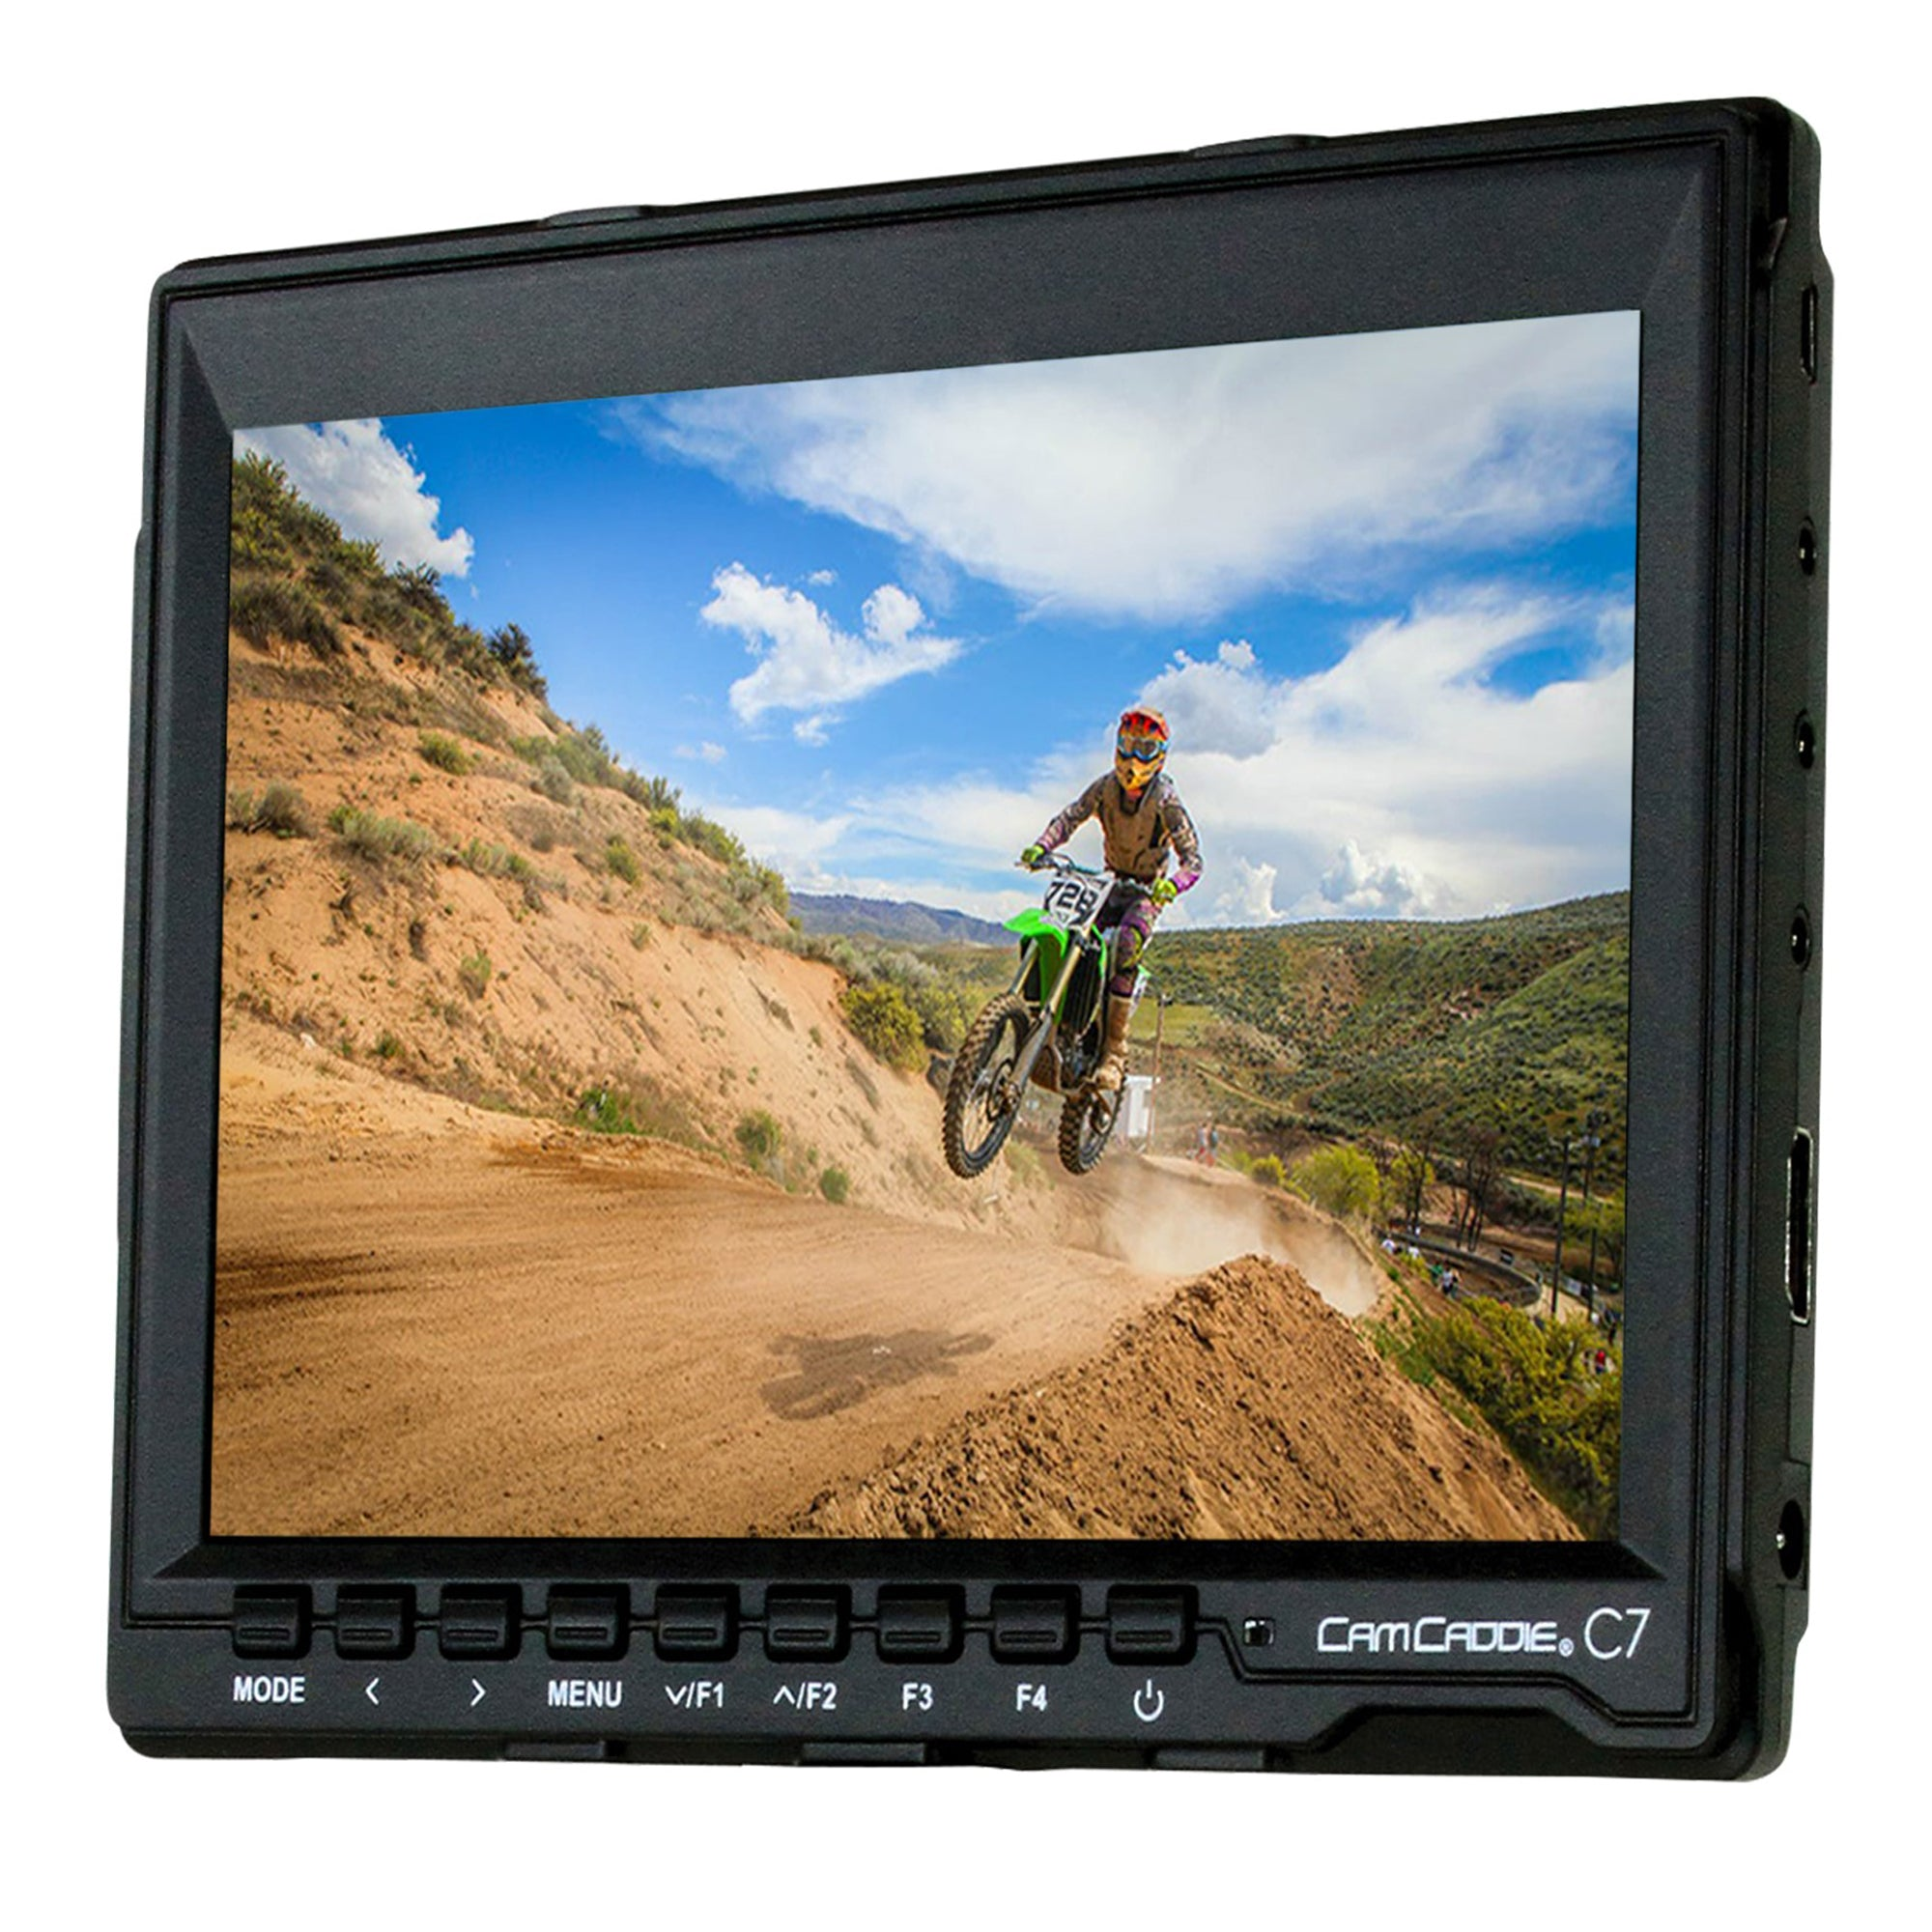 "Cam Caddie C7 7"" 1280 x 800 HD IPS Field Monitor with EU Compatible Power Supply - Cam Caddie - The Original Universal Stabilizing Camera Handle"